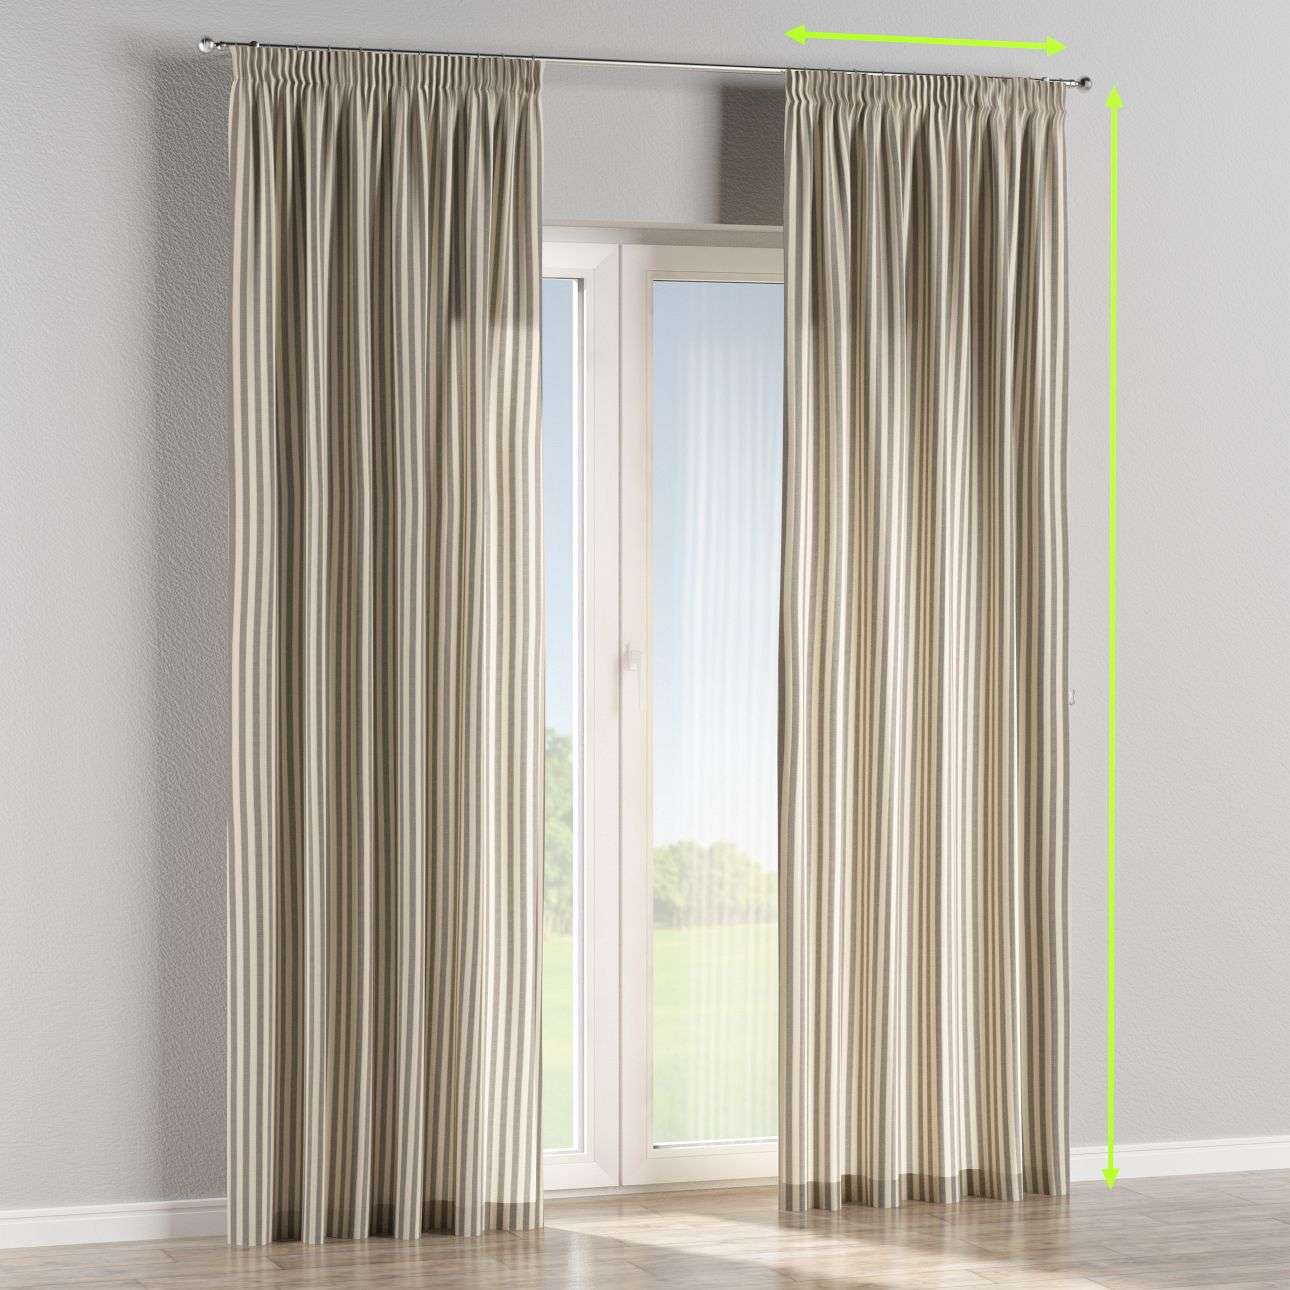 Pencil pleat lined curtains in collection Quadro, fabric: 136-12